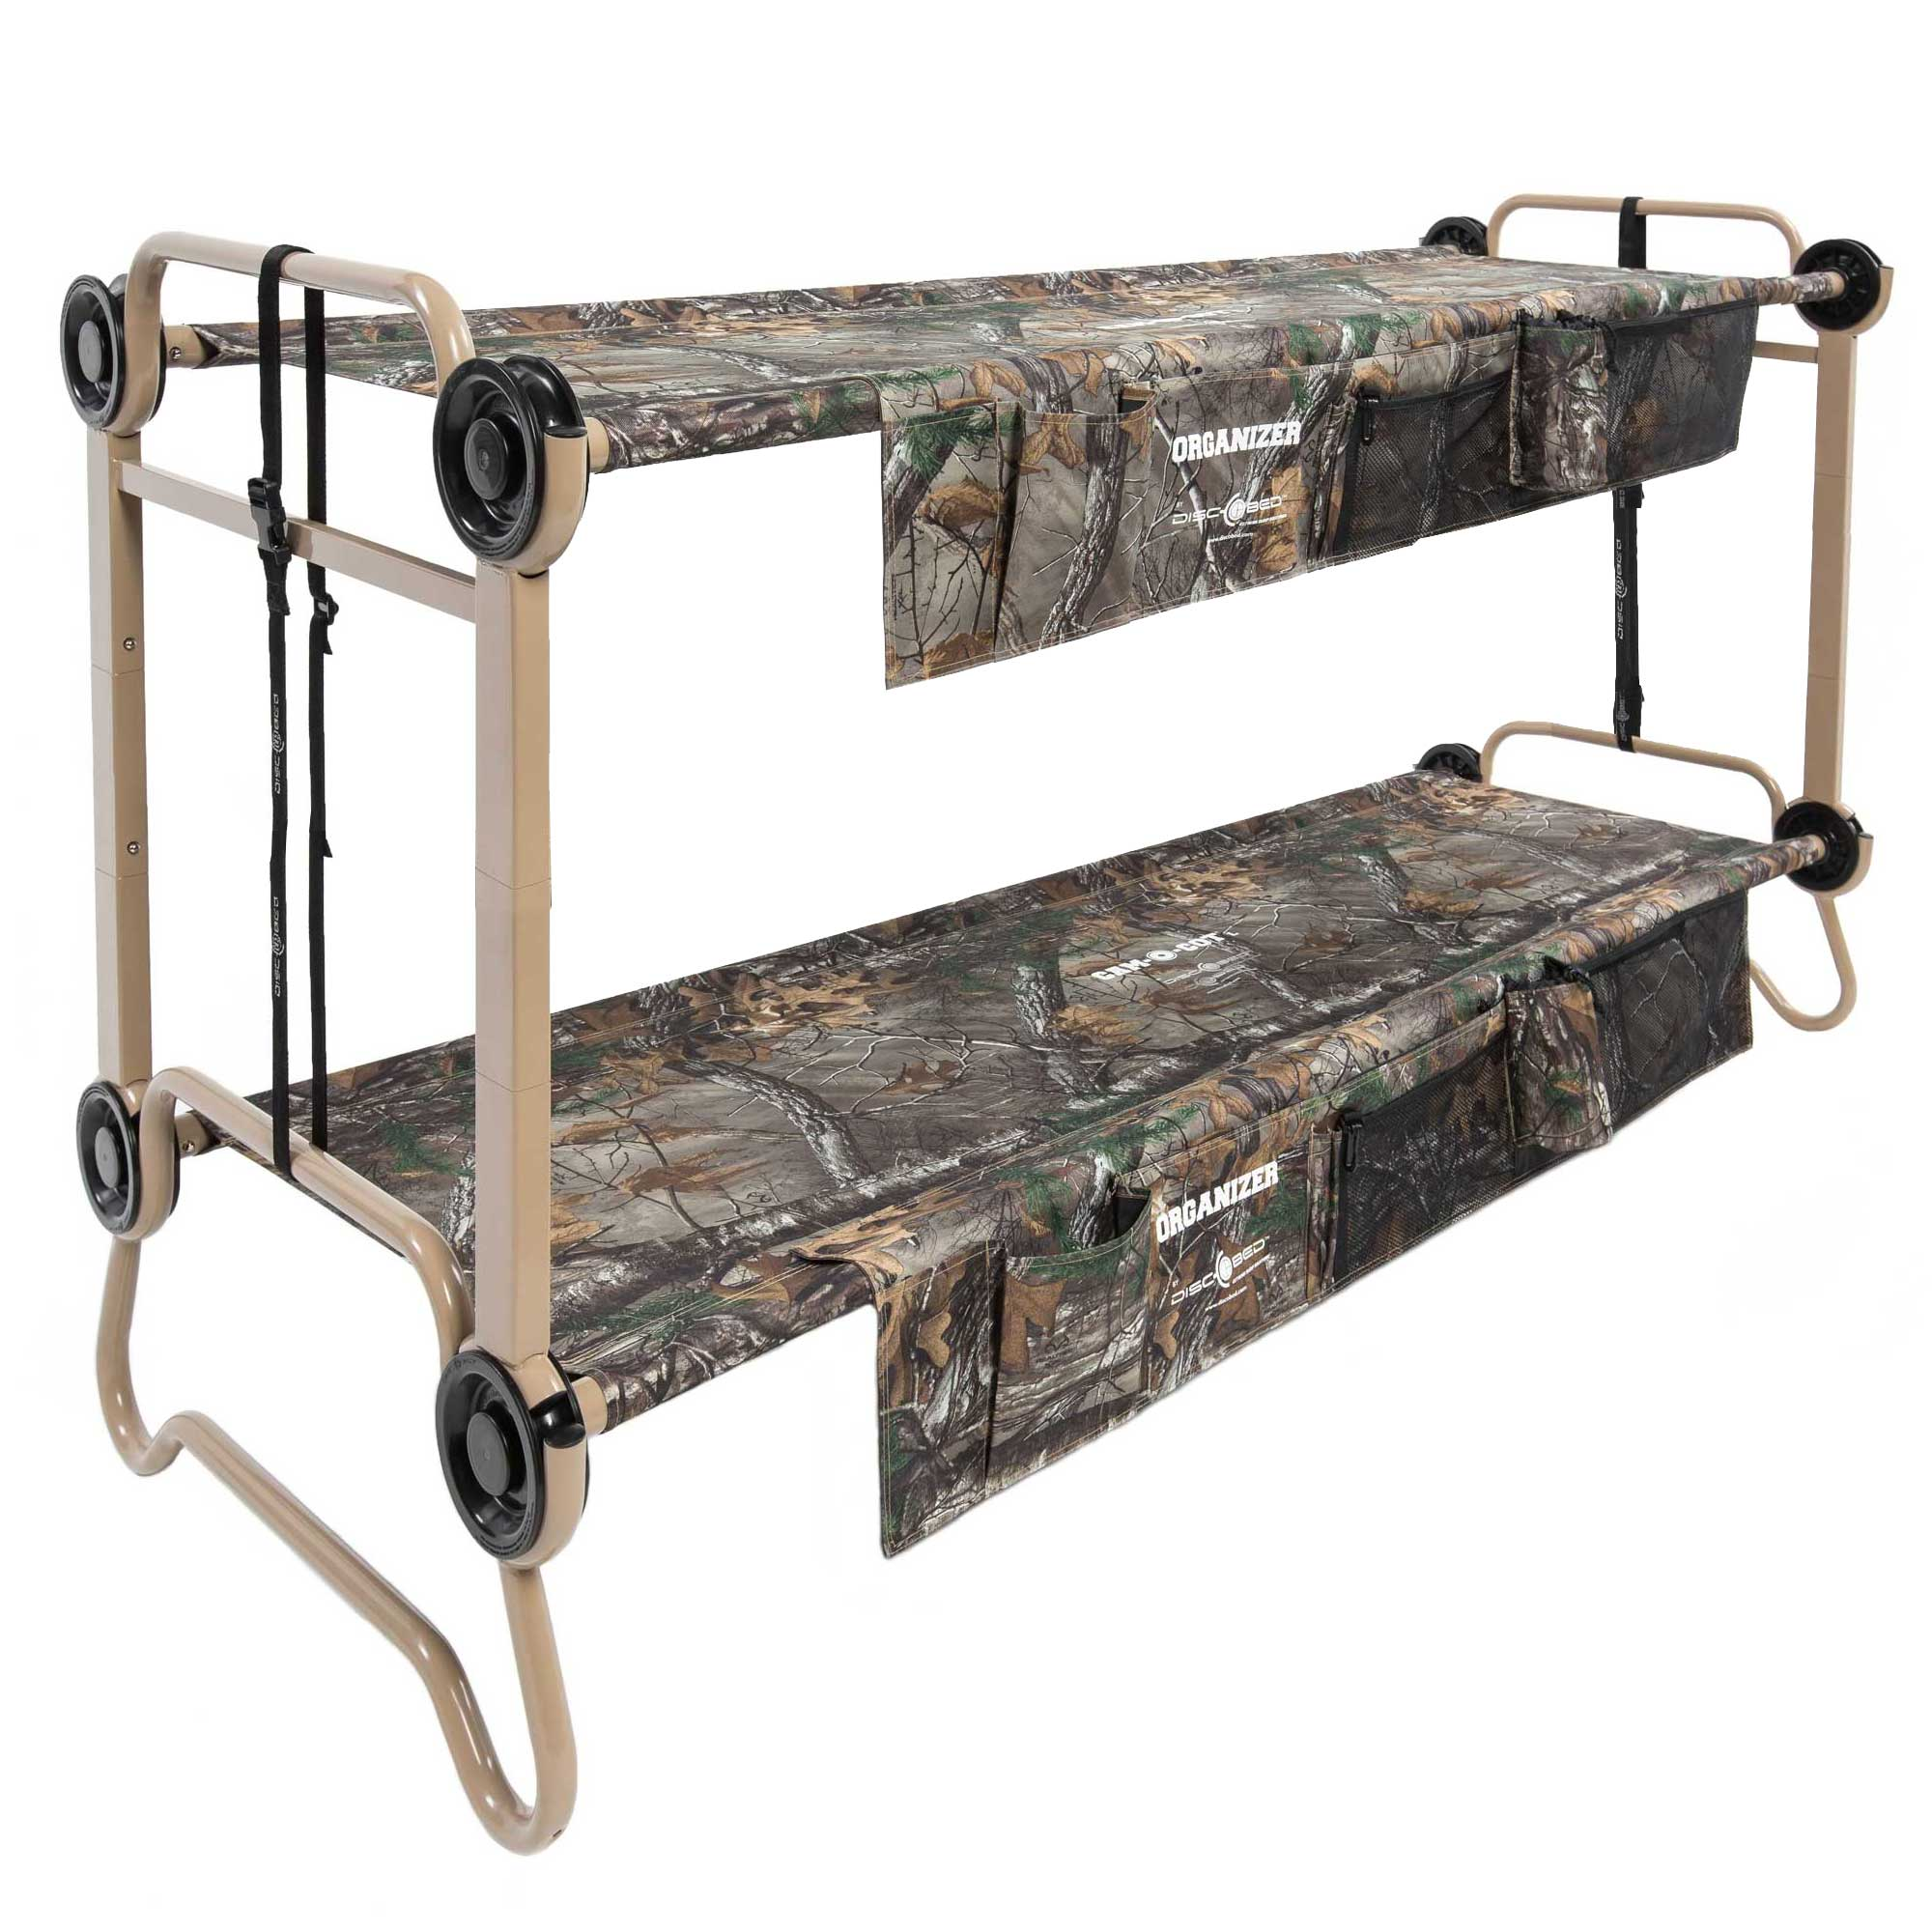 Disc O Bed Large Realtree Cam O Bunk Cot With Organizers 7 Inch